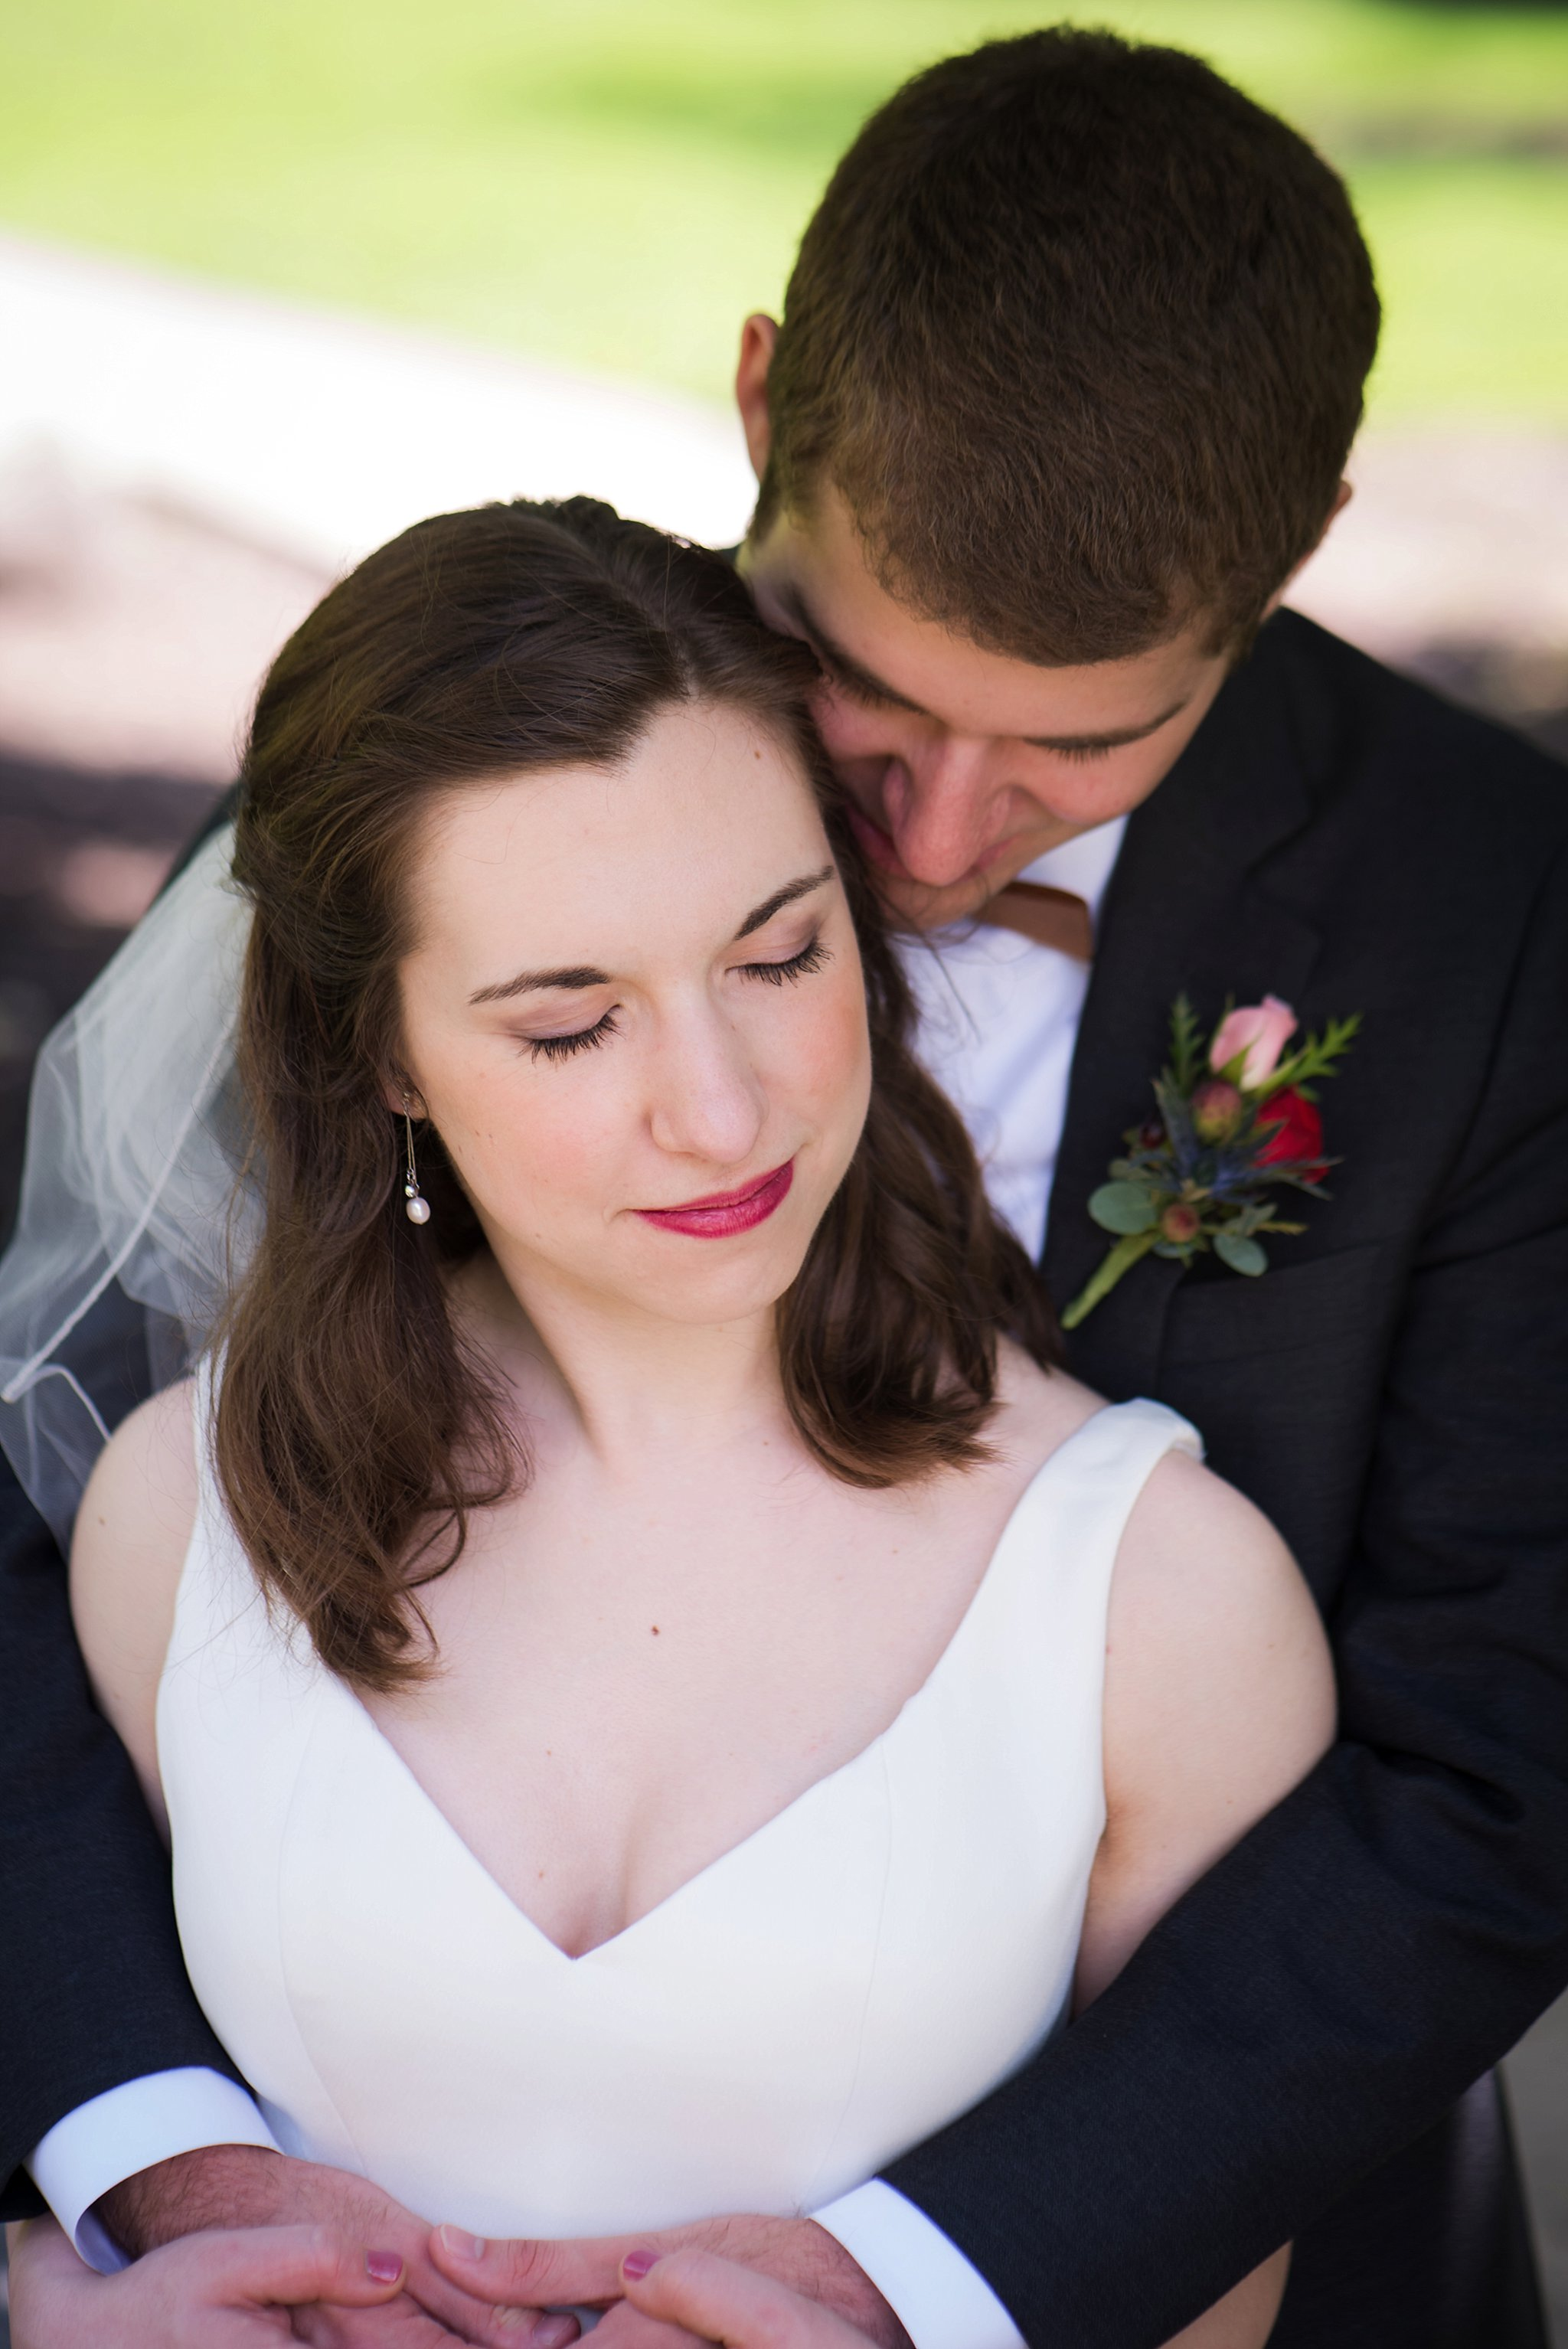 JBP Cincinnati wedding photographer